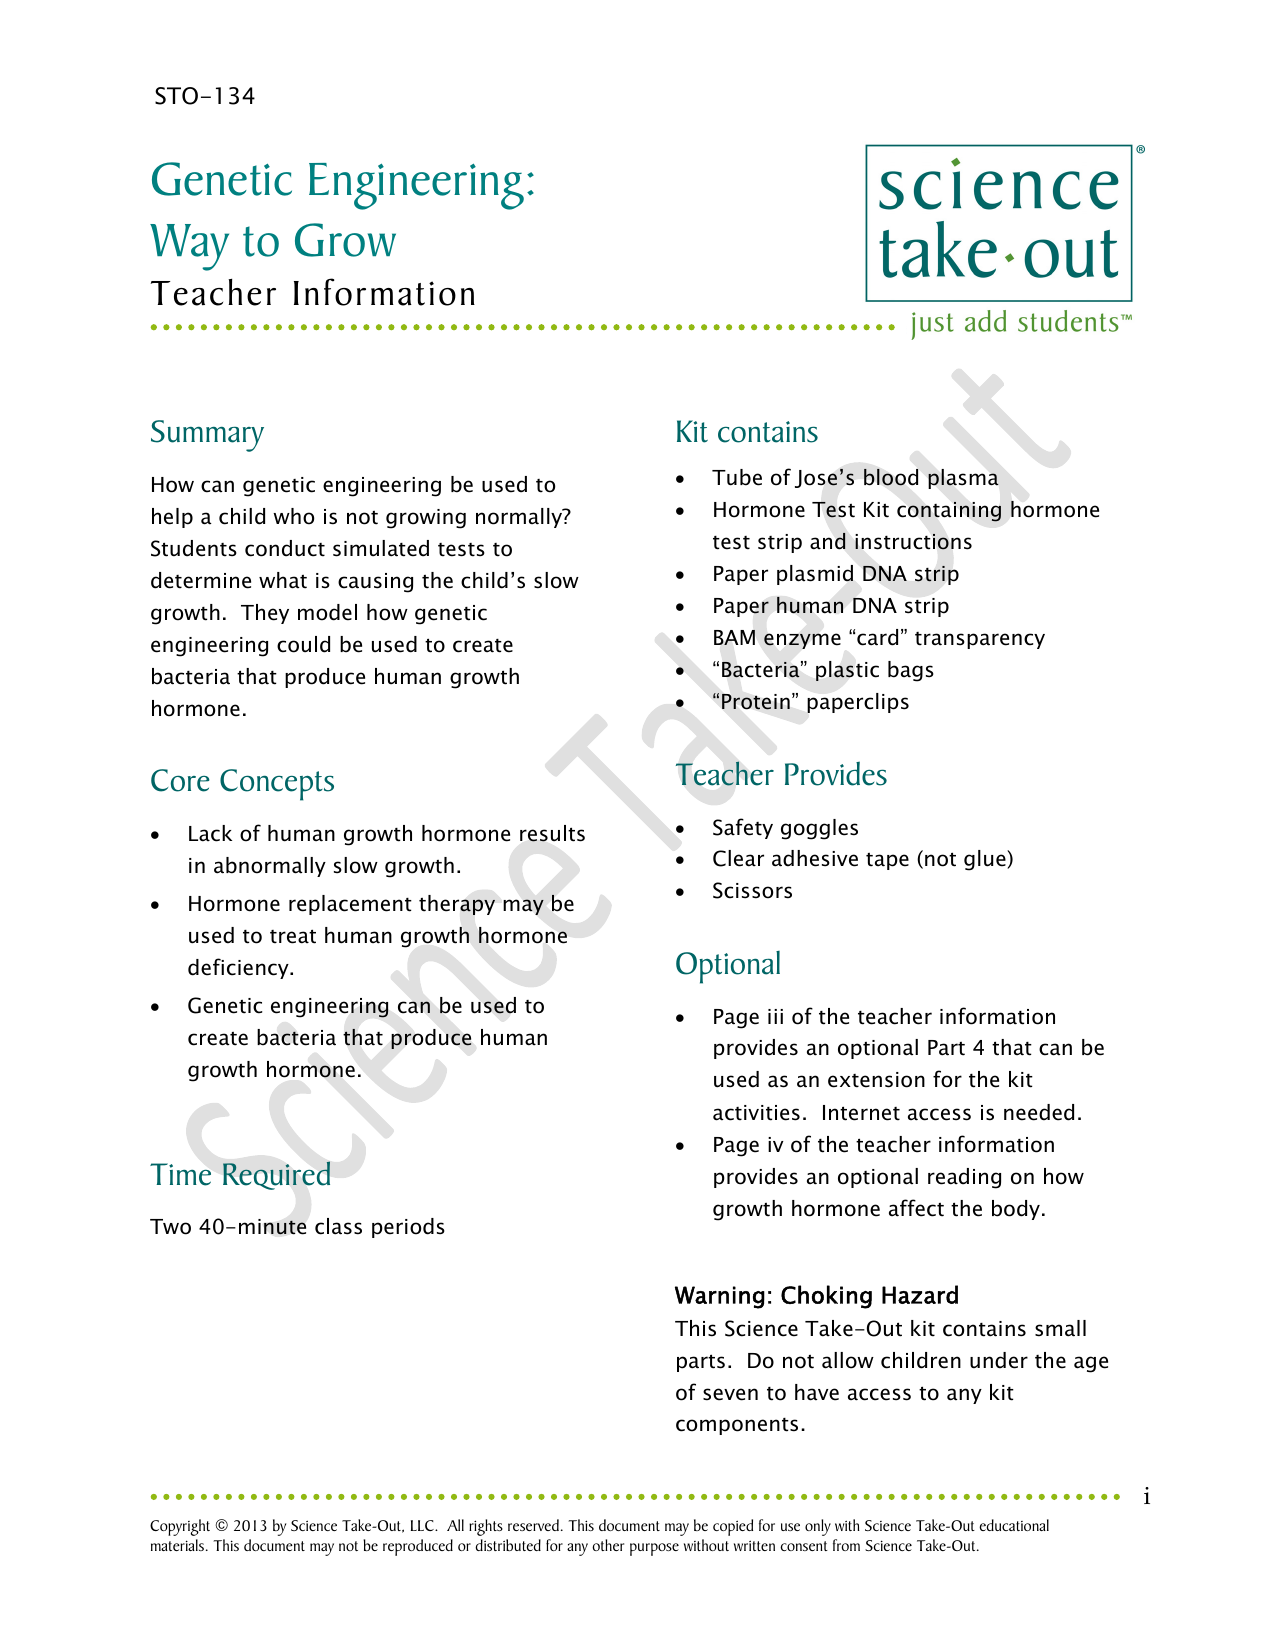 Teacher Guide - Science Take-Out